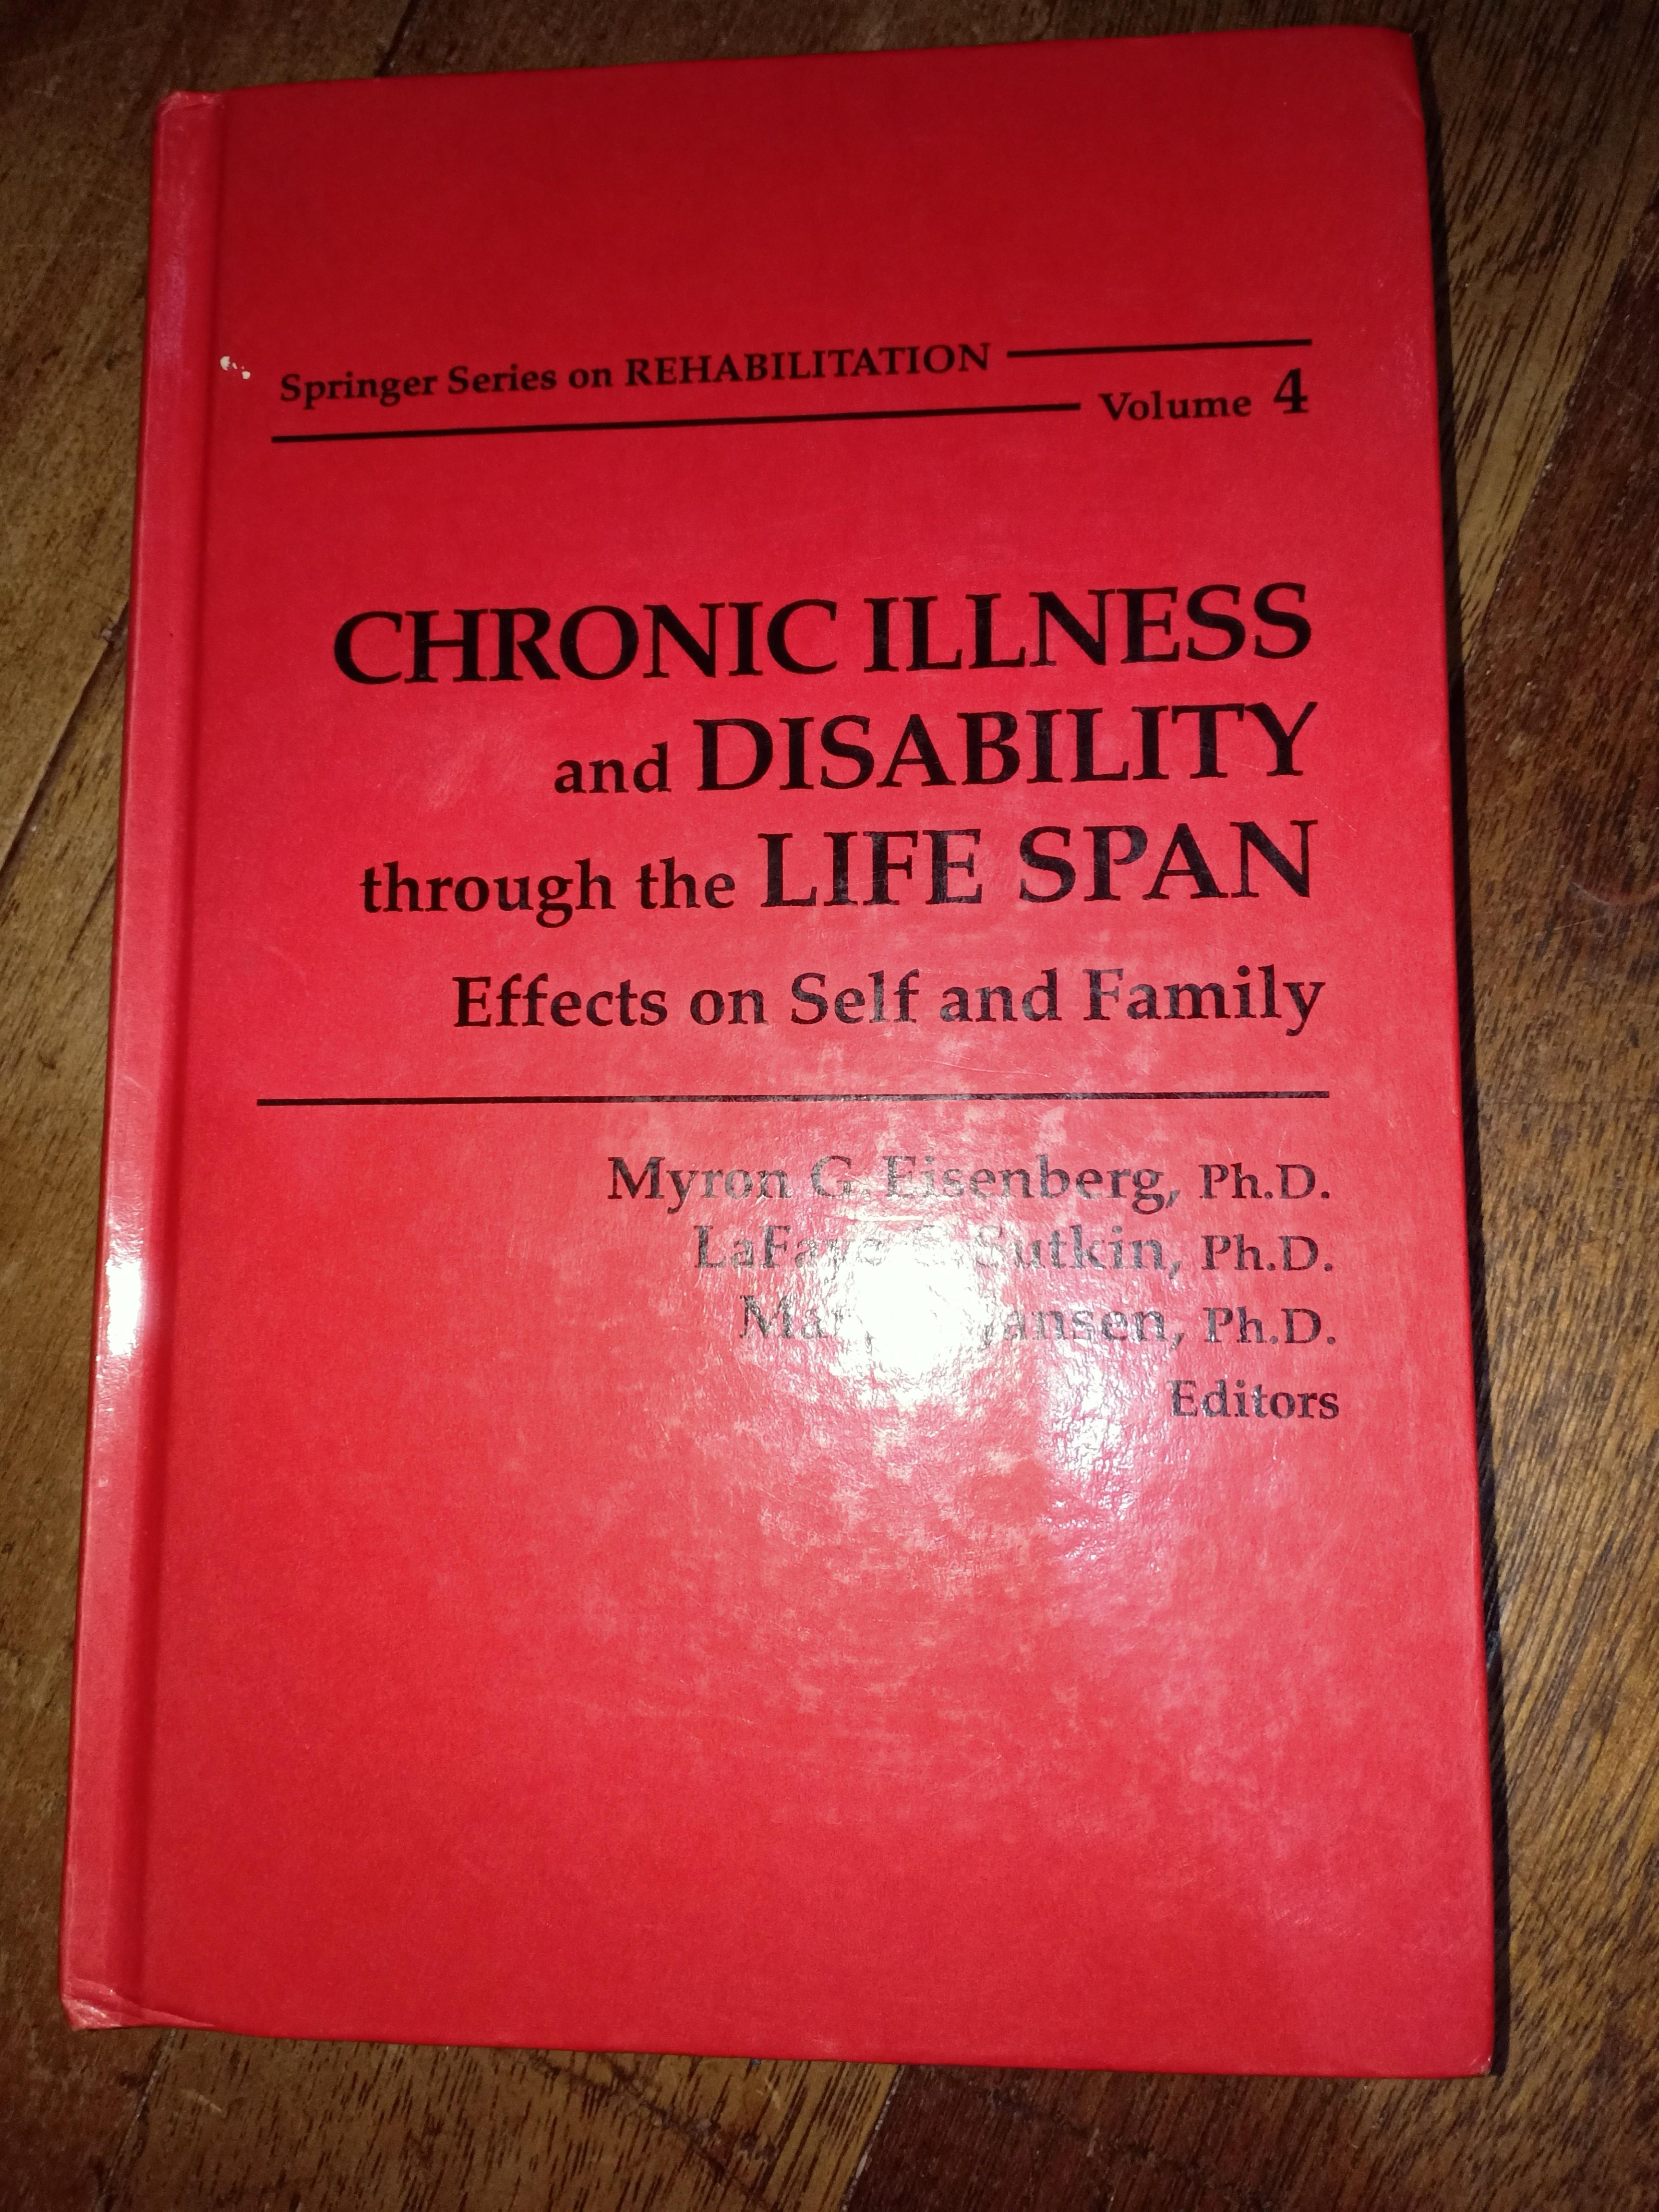 Chronic Illness and Disability through the Life Span: Effects on Self and Family